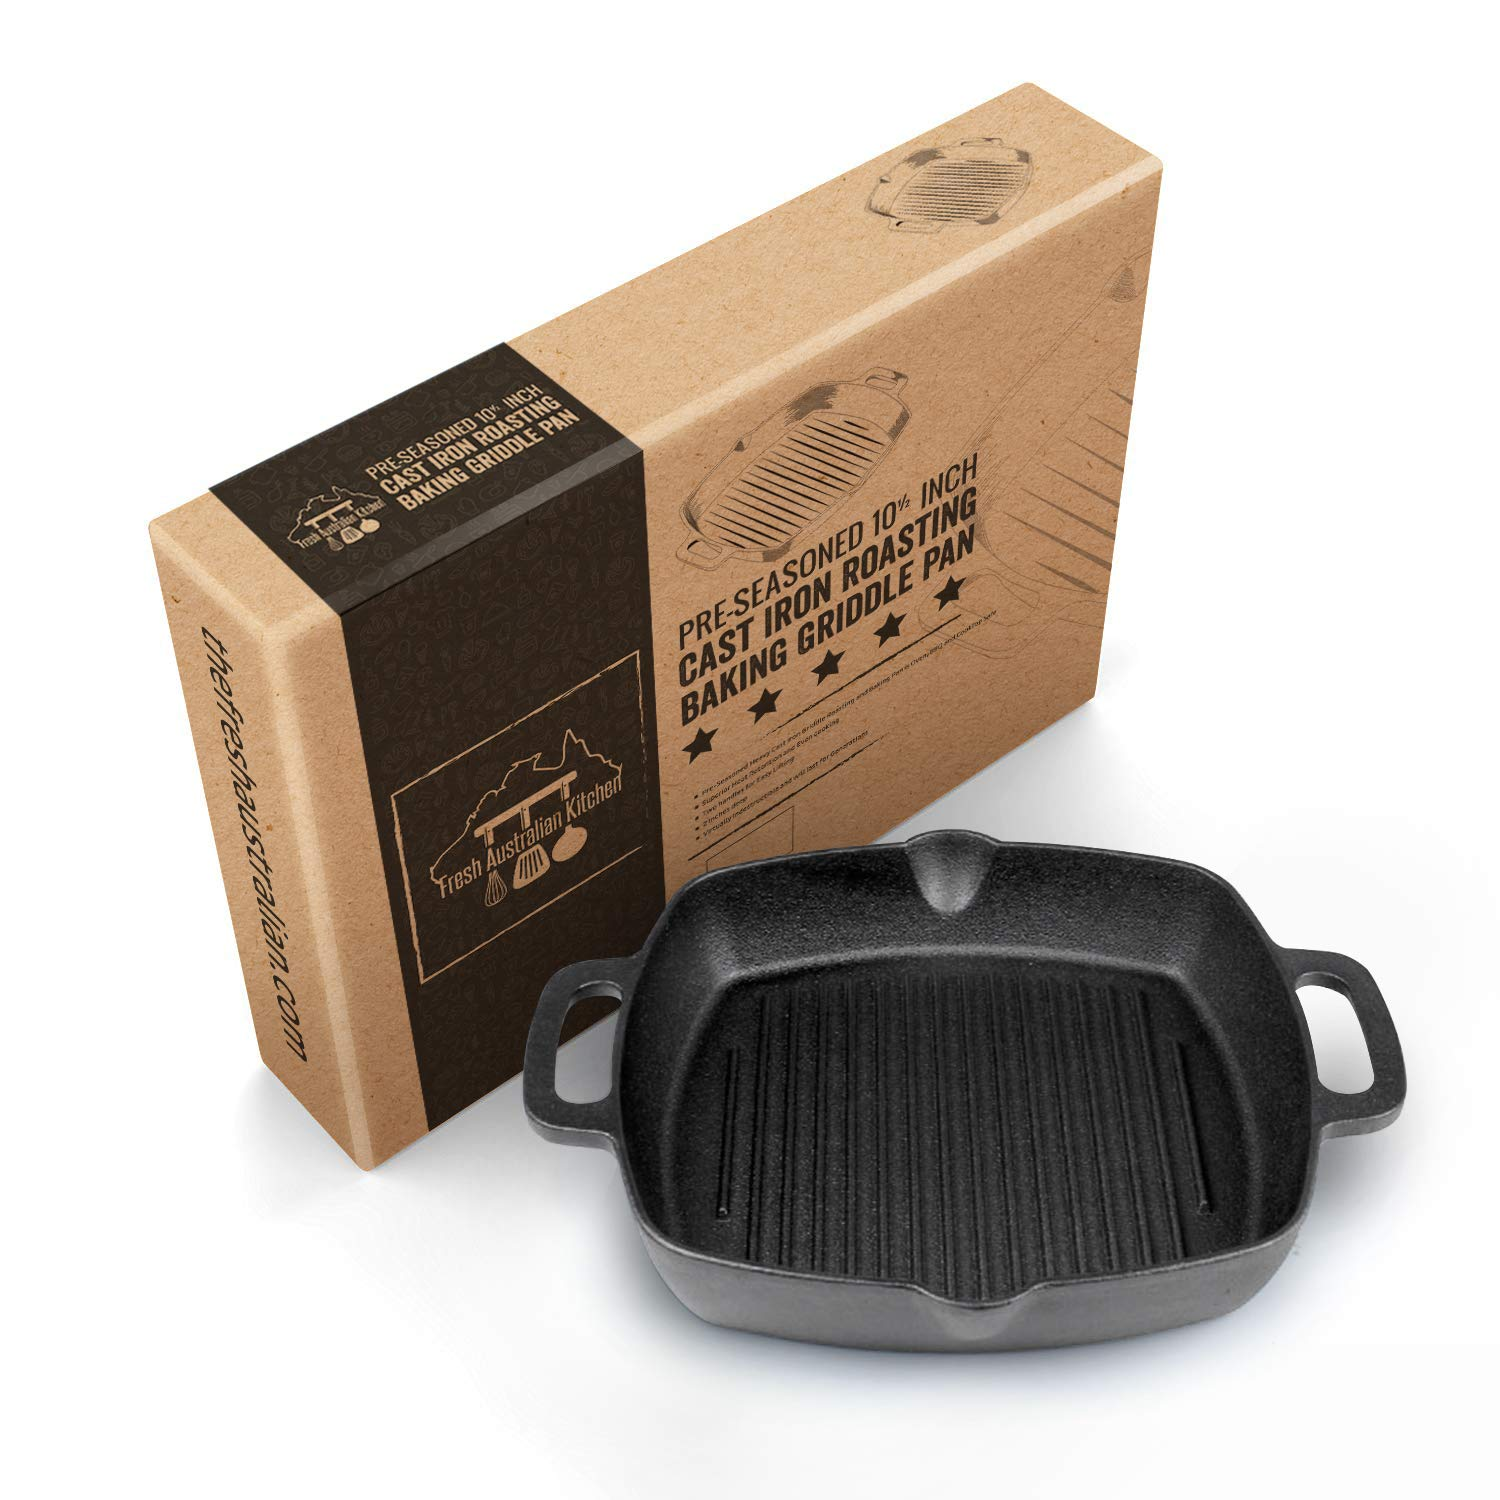 Fresh Australian Kitchen Pre-seasoned Cast Iron Grill Skillet Pan. 12 Inch (10.5 Inches Square) Compact Shape with Dual Handles. For Barbecue, Stove, Oven or Camping.